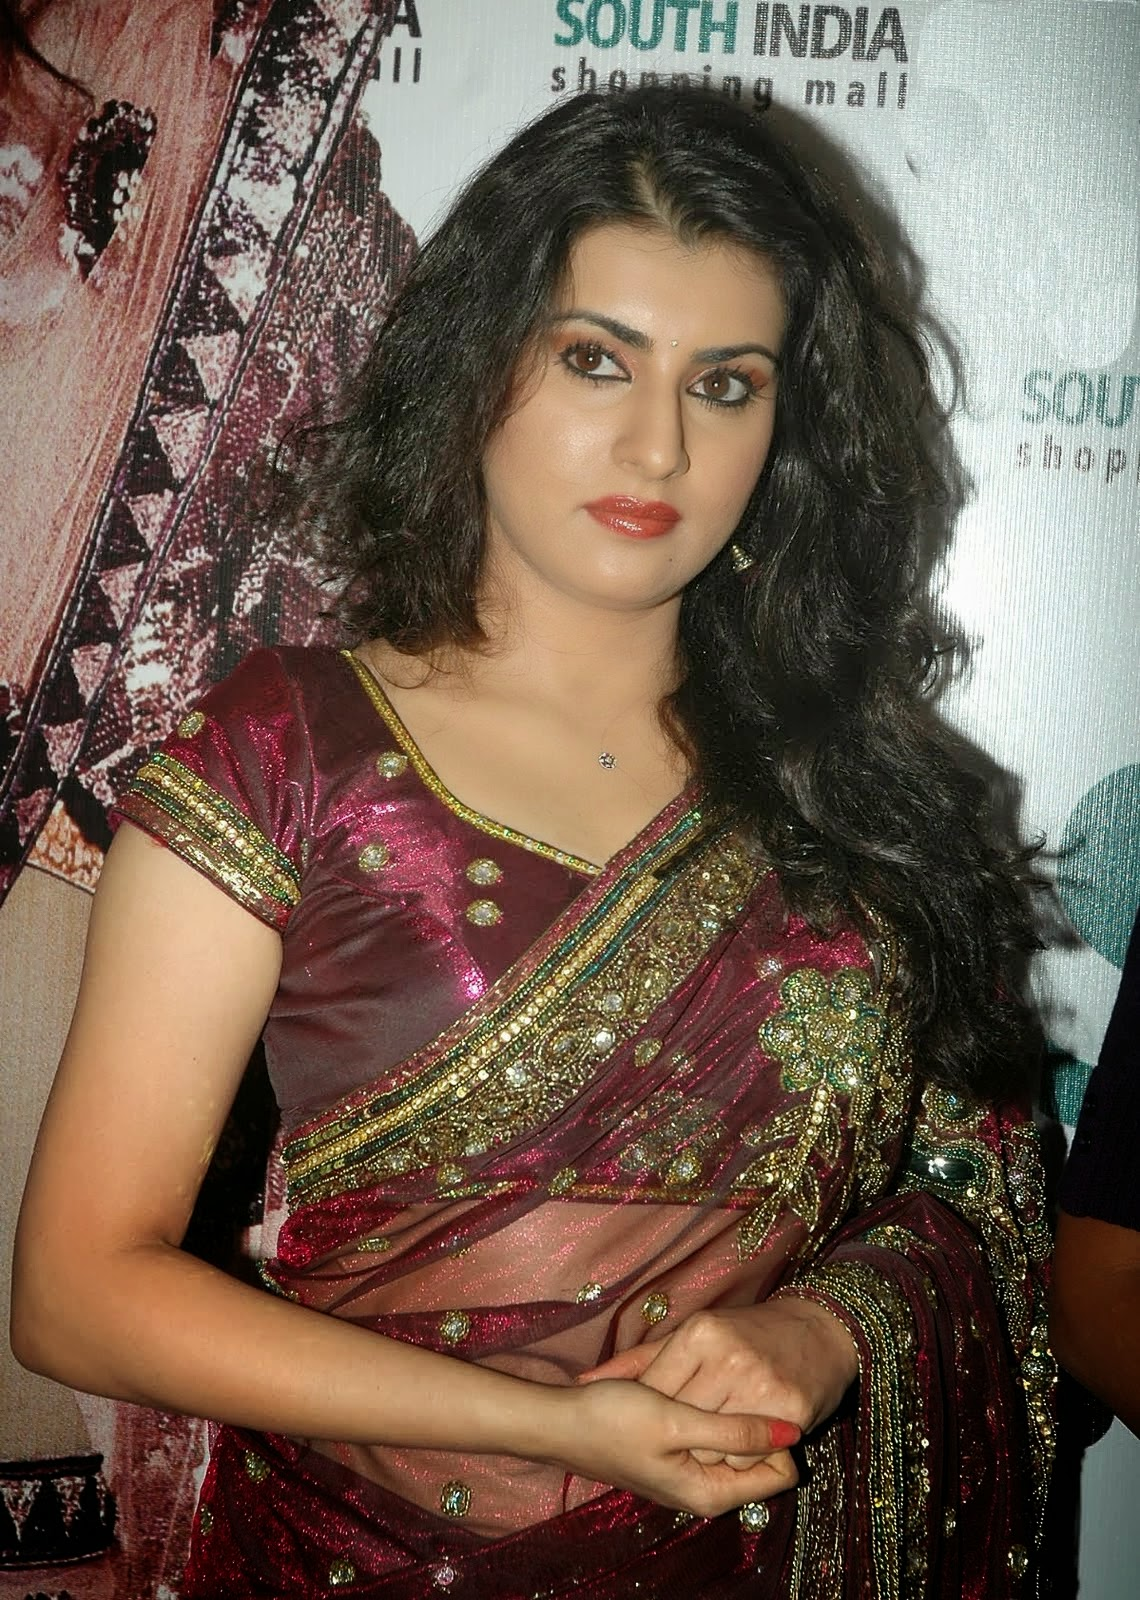 Telugu archana veda wallpapers in maroon saree tollywood boost - Archana wallpaper ...